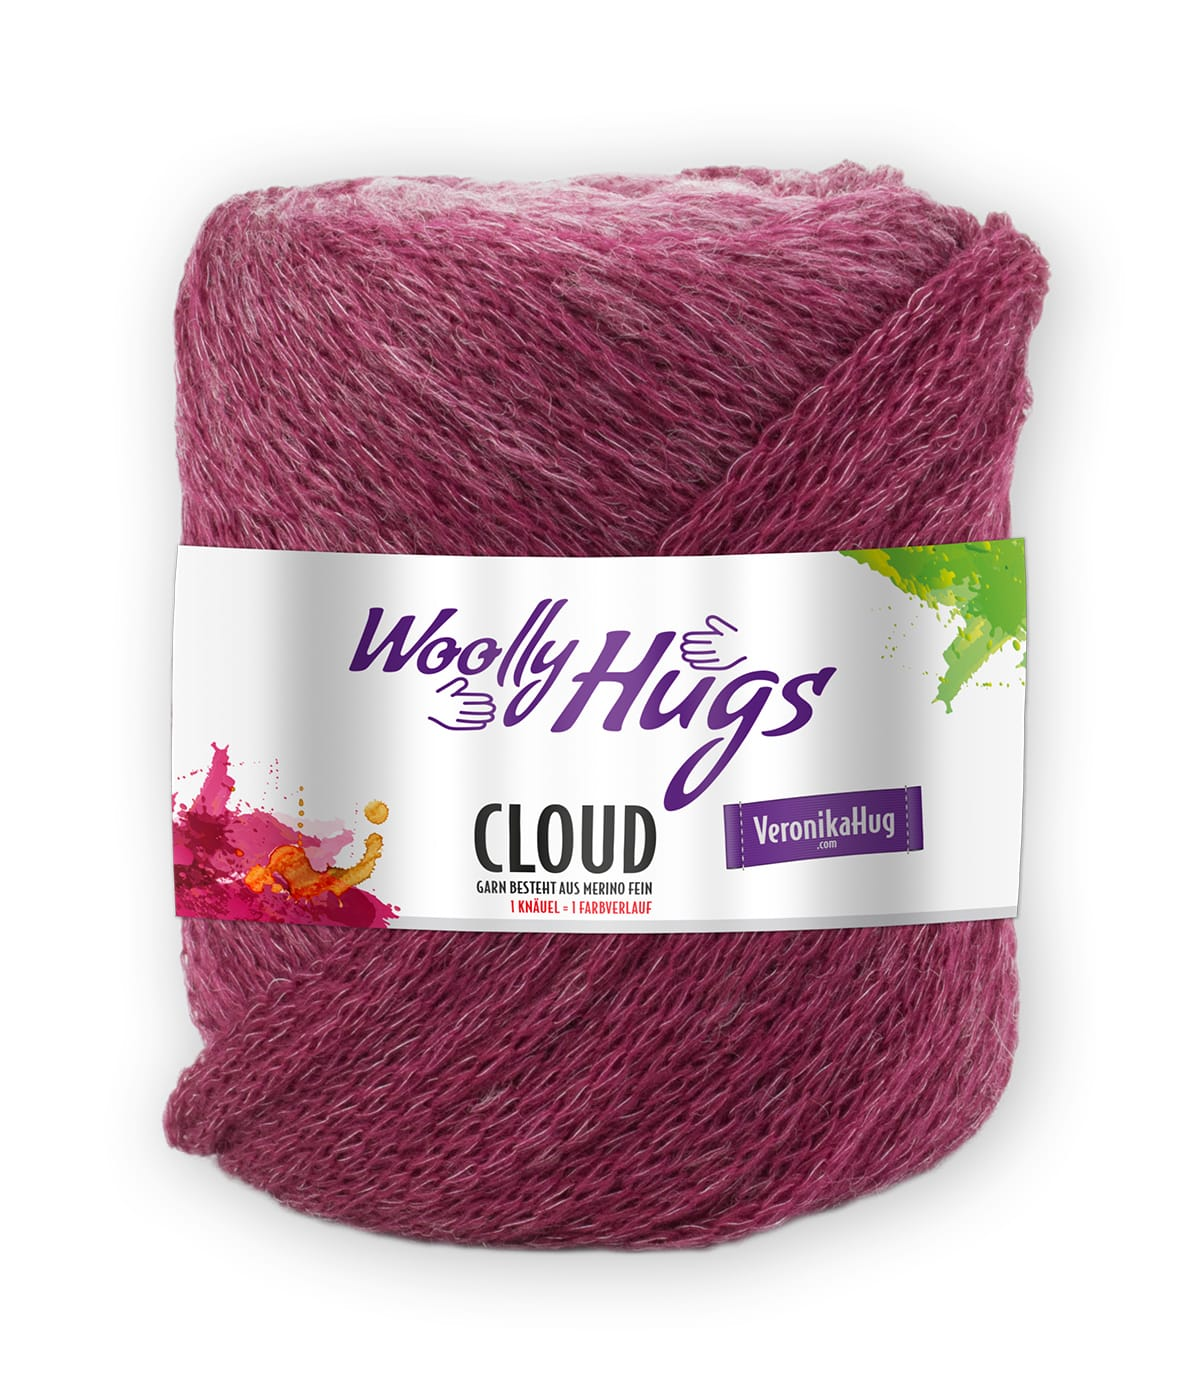 Woolly Hugs Cloud 190